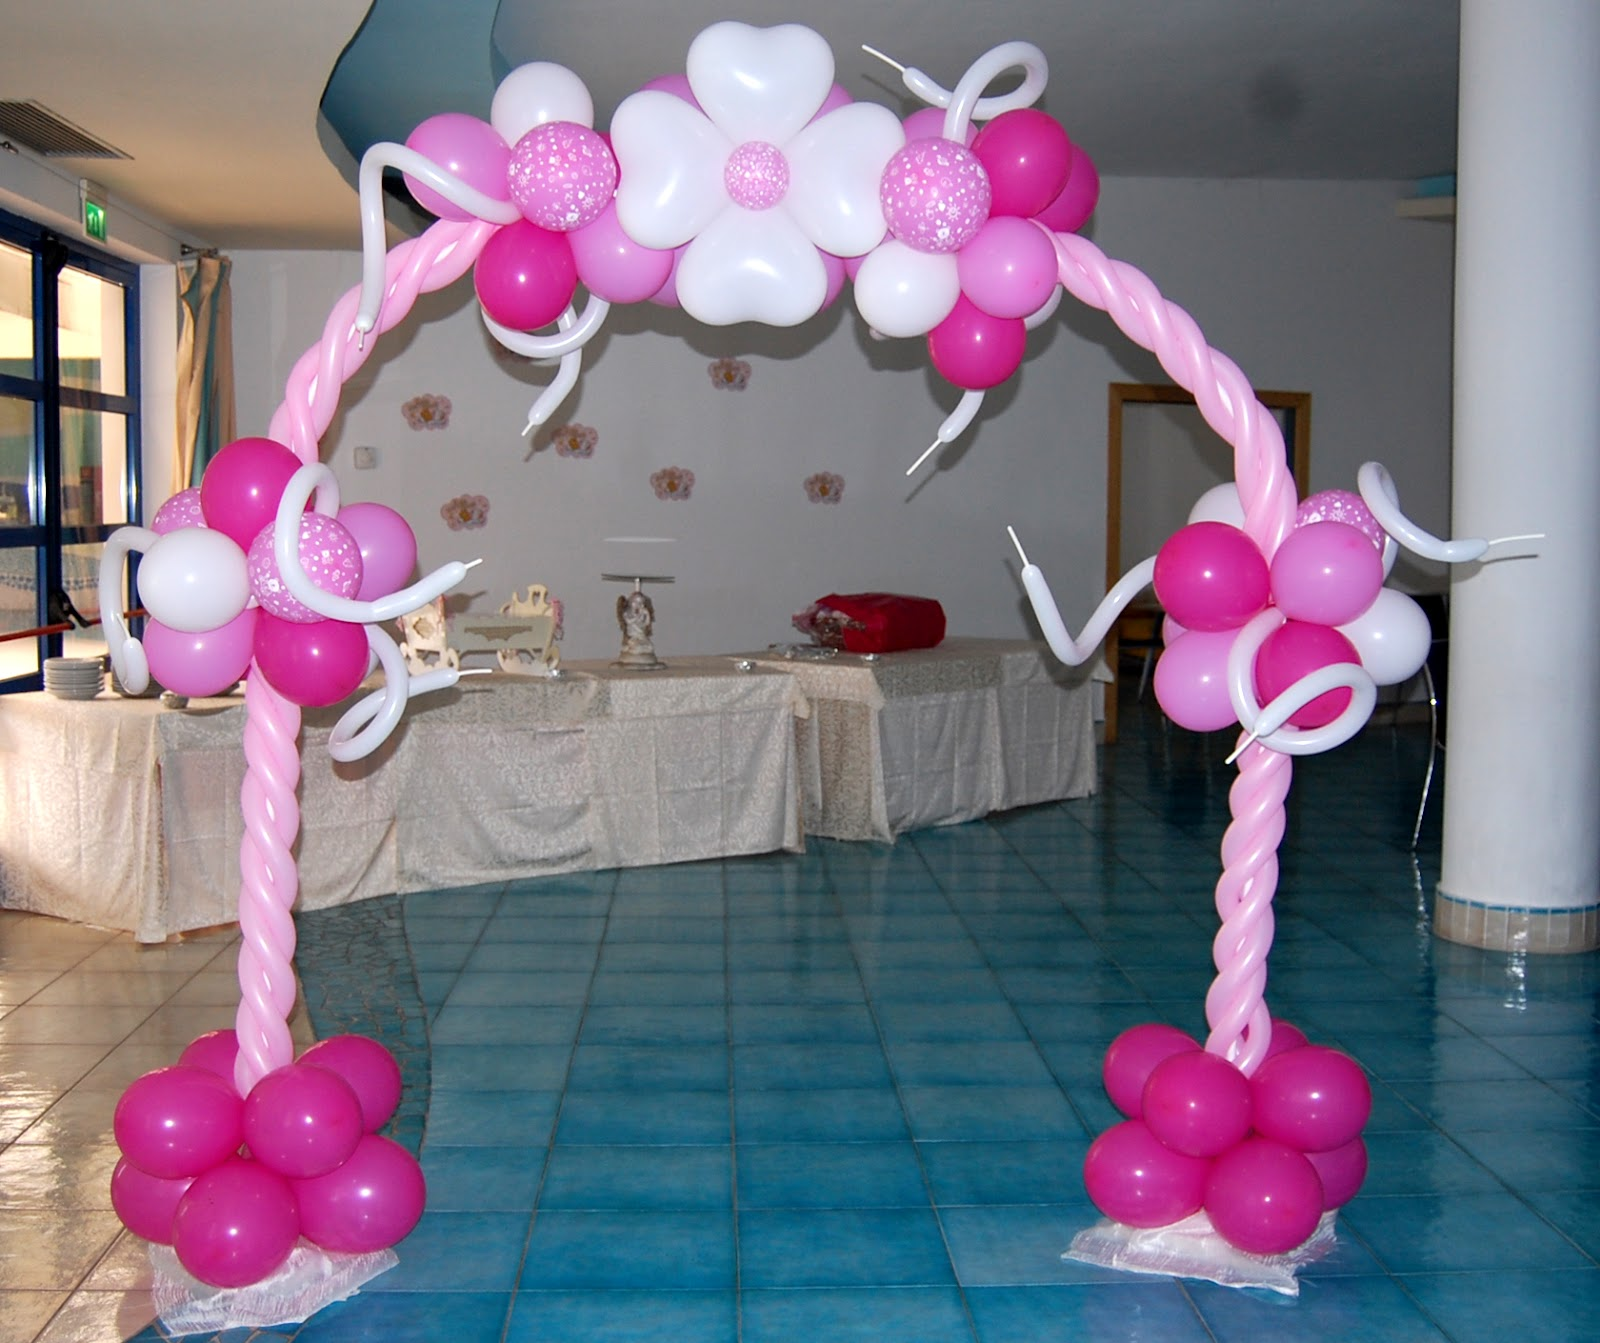 Lv balloon art battesimo - Idee per addobbi battesimo ...